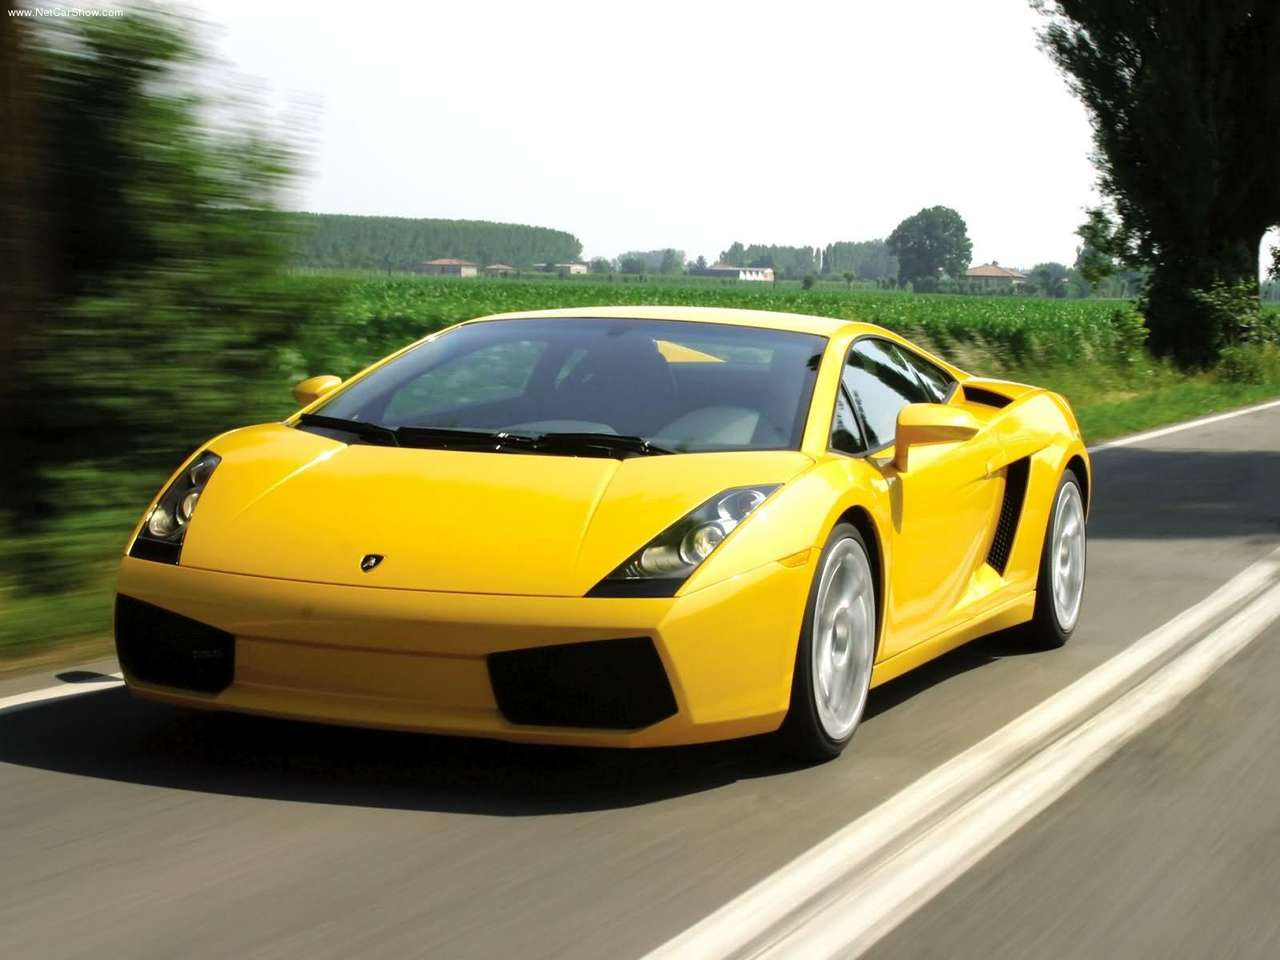 Lamborghini Gallardo Hd Background Wallpaper 17 Thumb